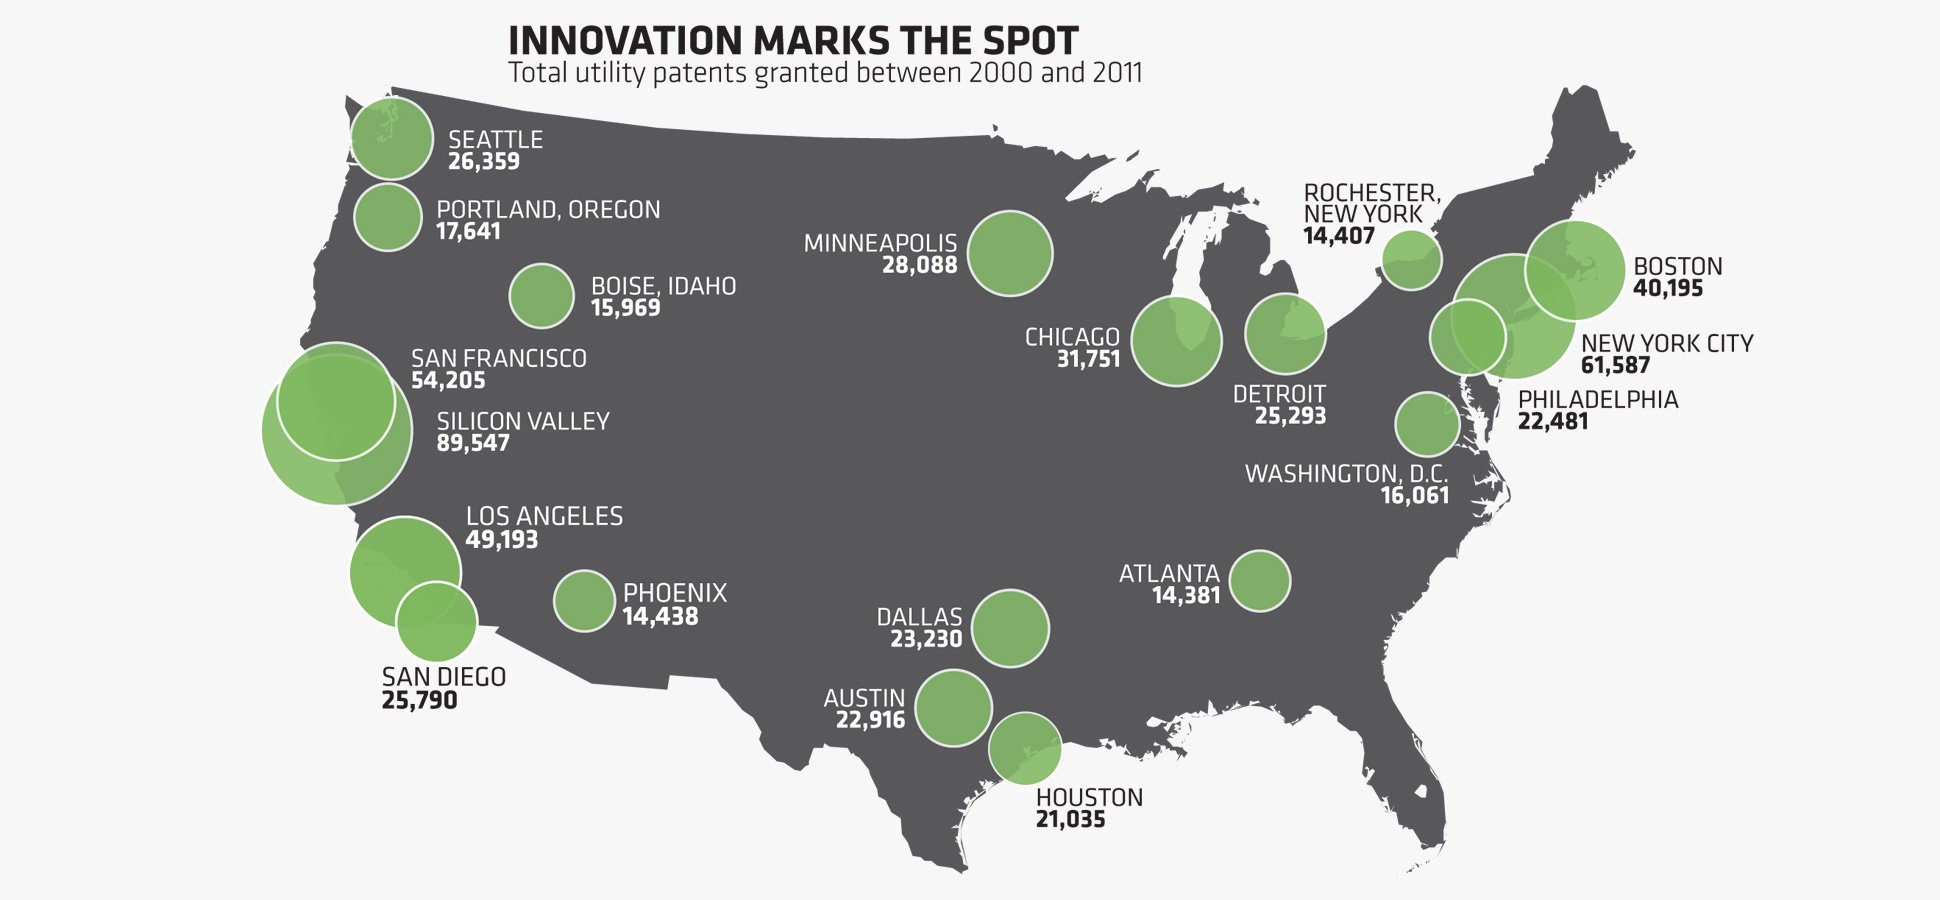 innovation-us-map-1940x900-3_35489